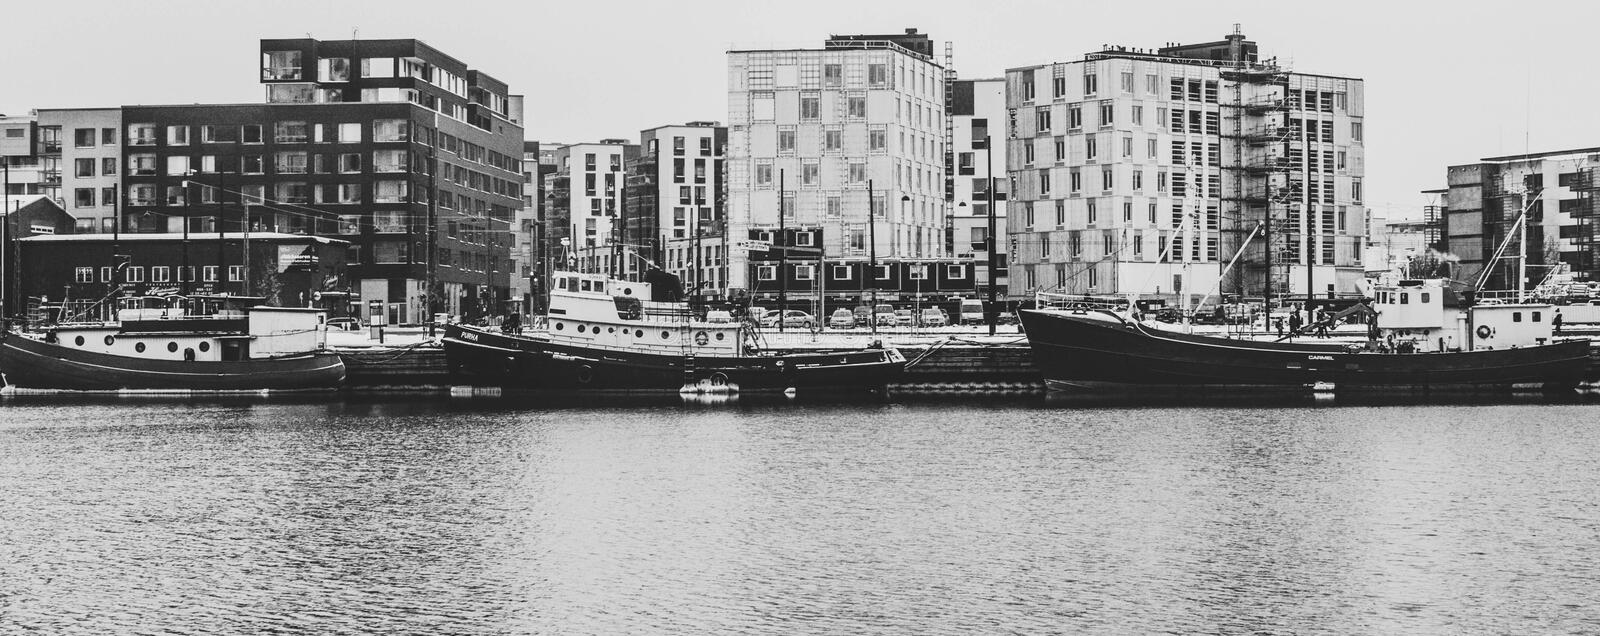 Grayscale Photography Of Buildings And River royalty free stock images